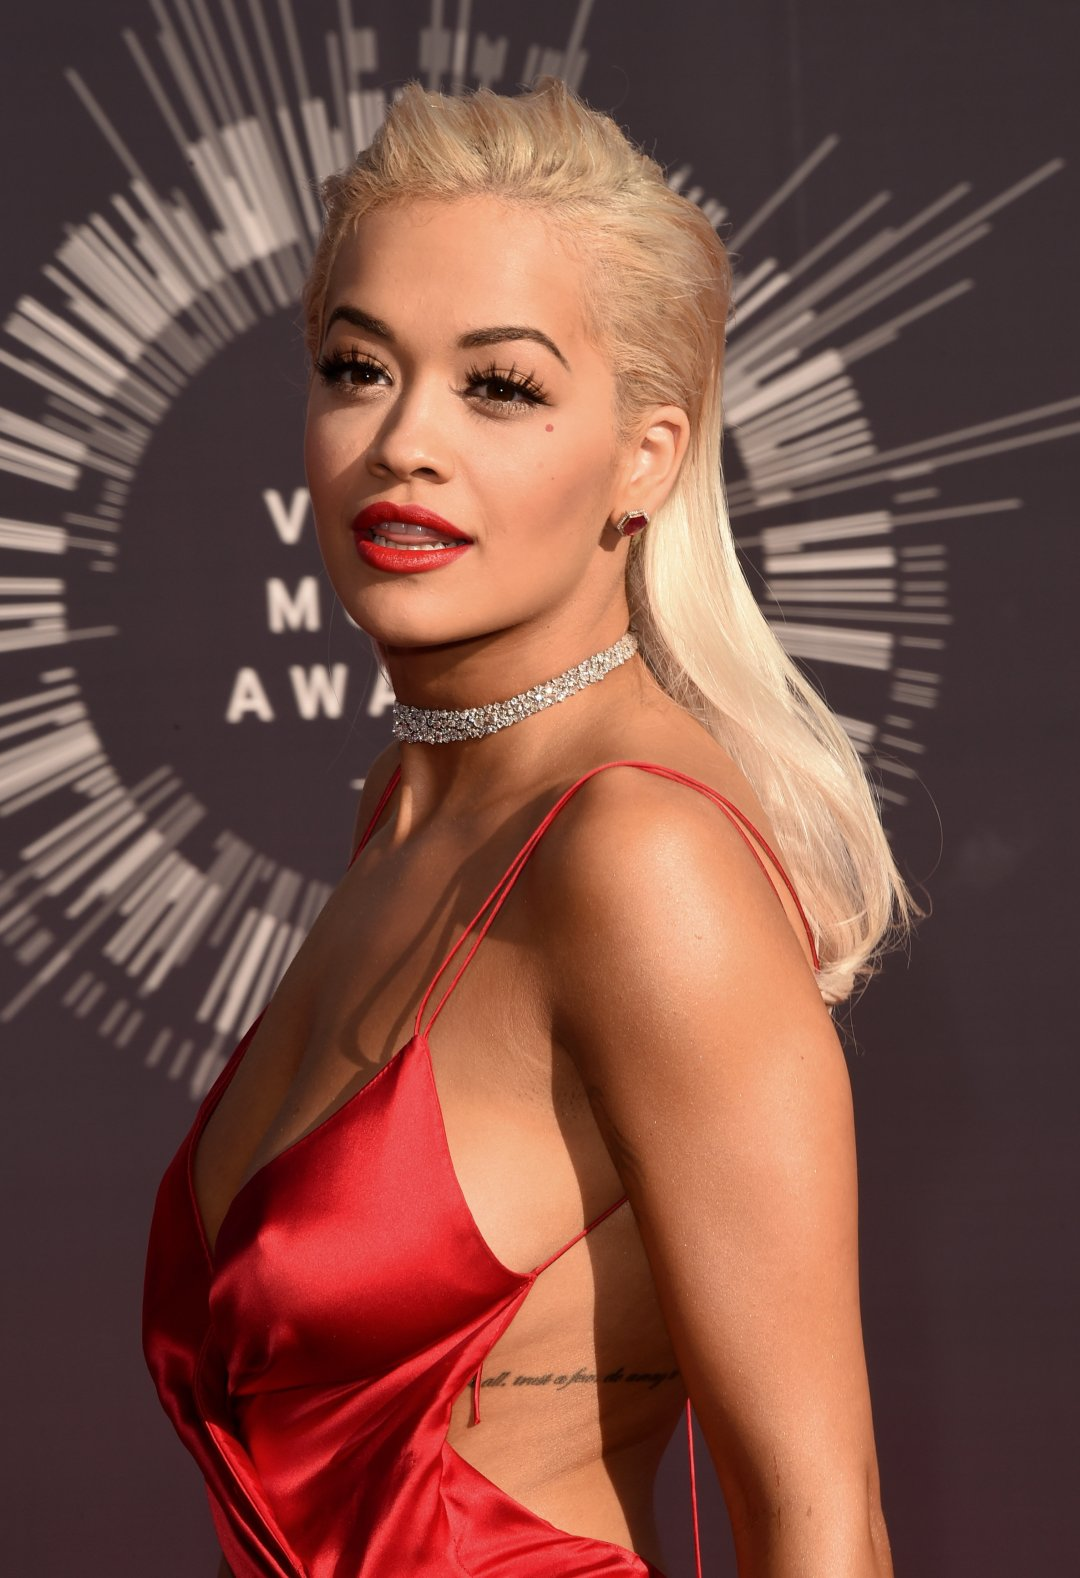 Singer Rita Ora attends the 2014 MTV Video Music Awards in California.